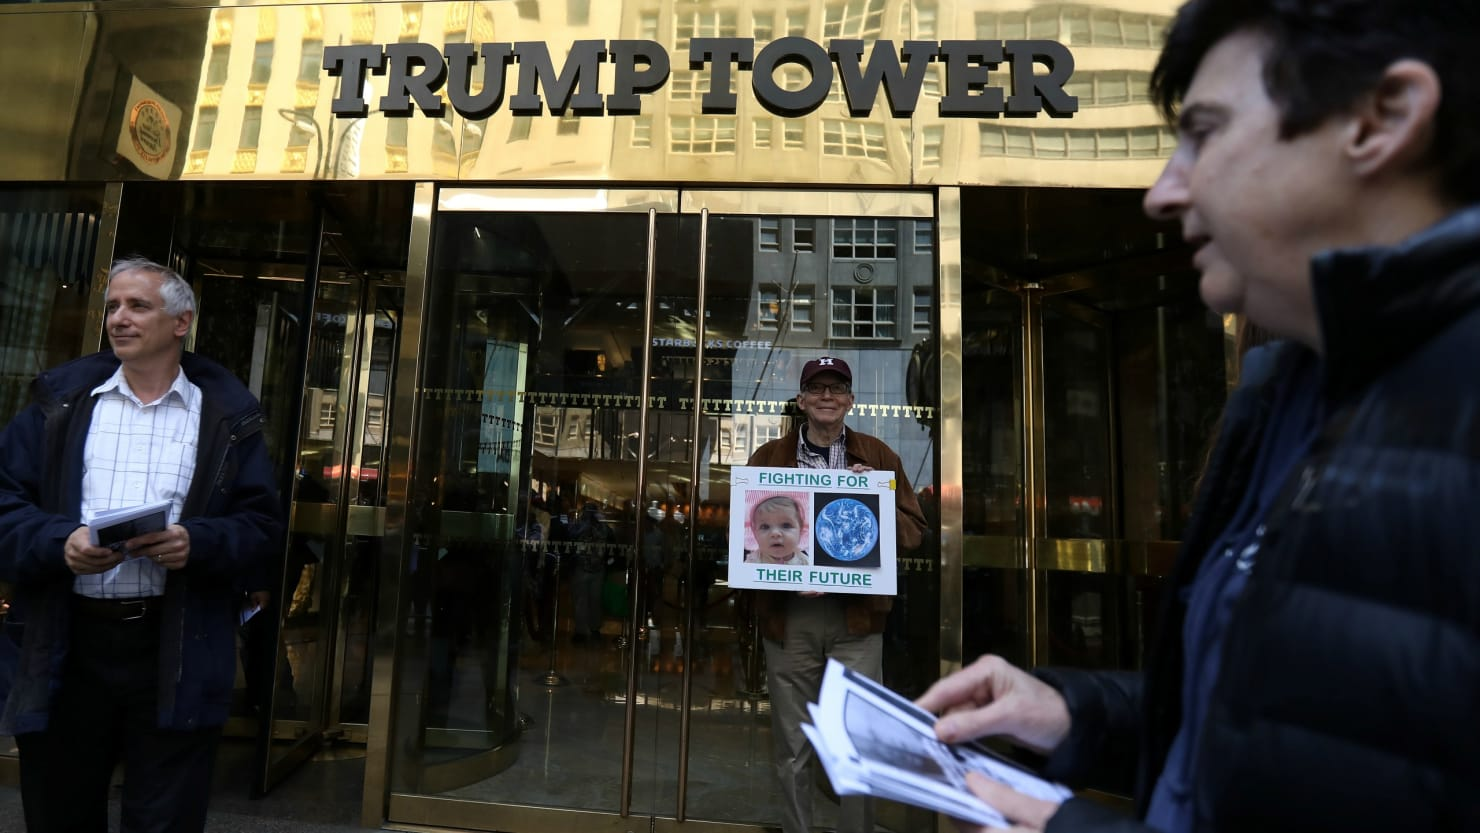 Report Secret Service Leaves Trump Tower After Price